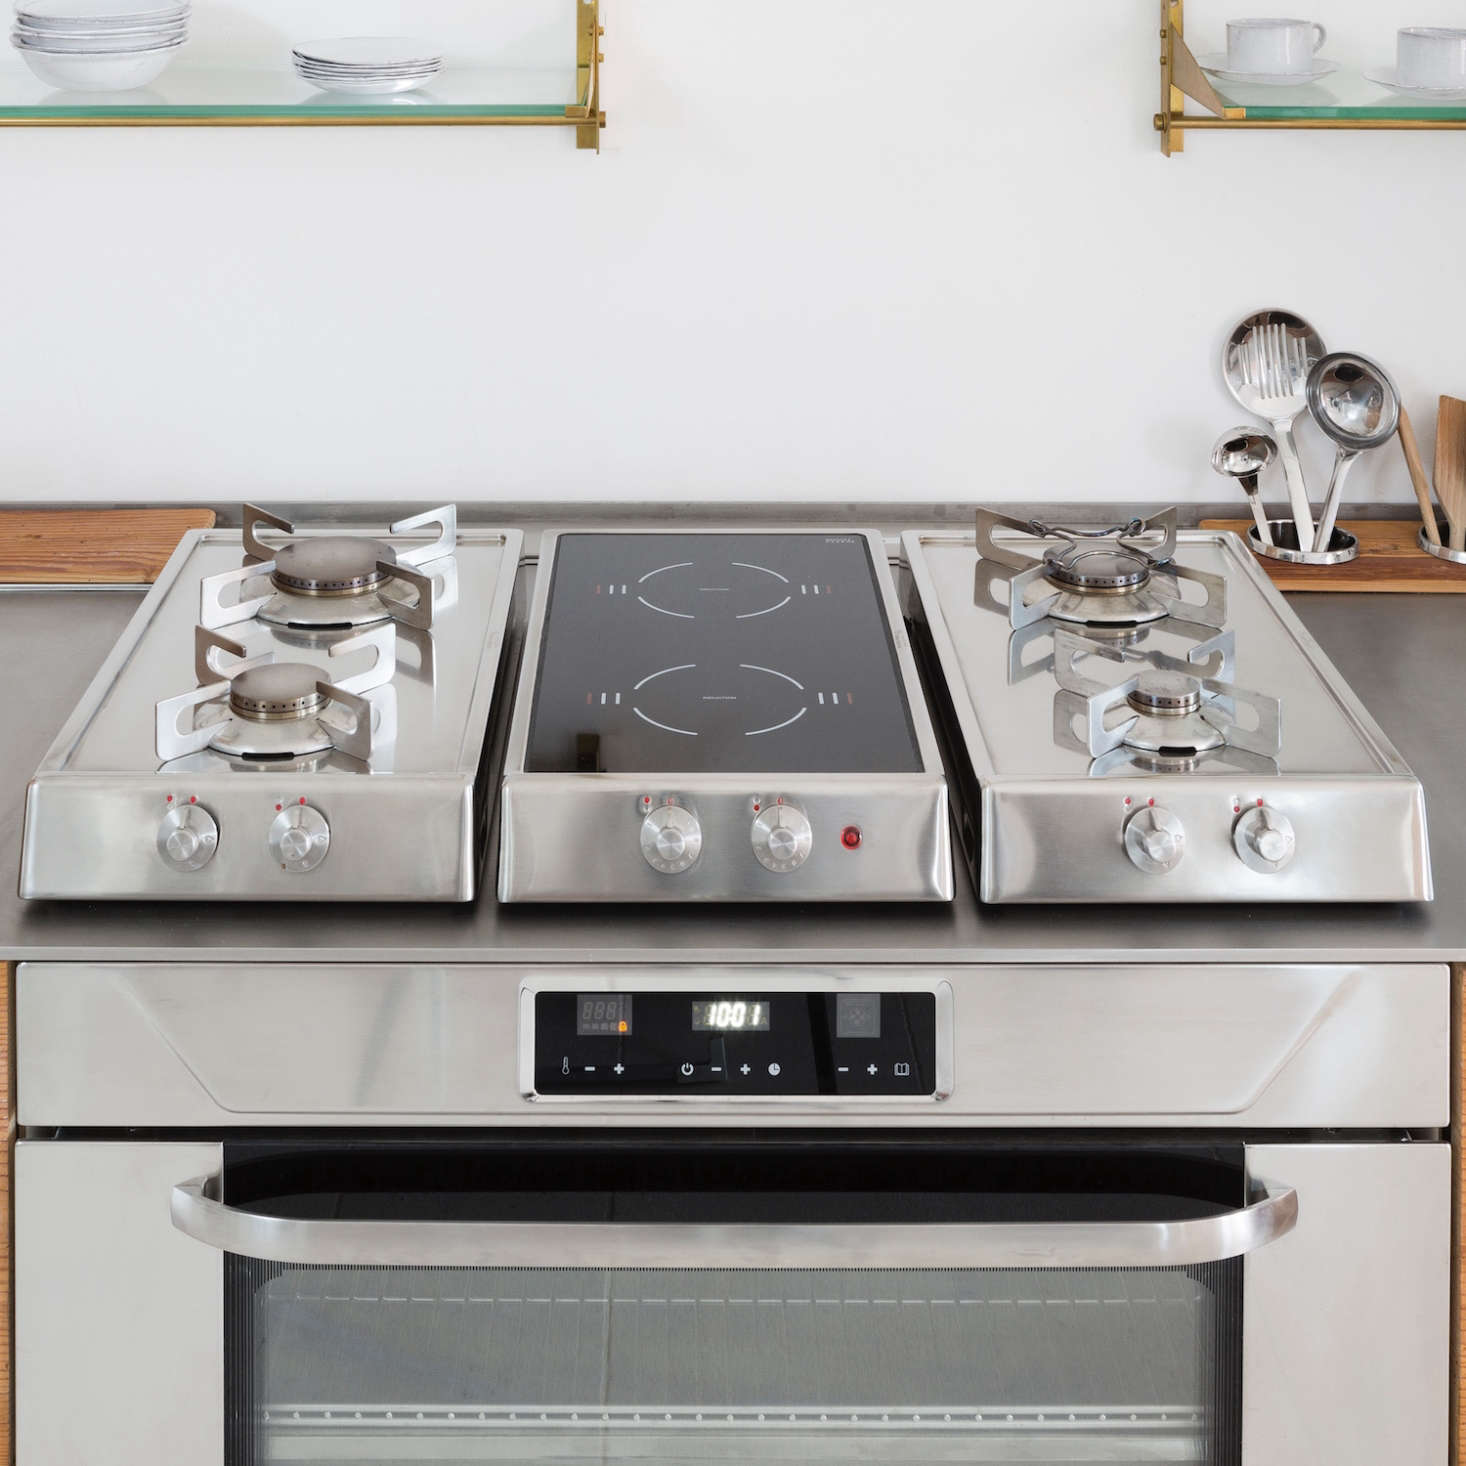 The oven and the three-part hob come from the Italian brand Alpes Inox. (For more information, see 7 high quality Italian kitchen programs.)